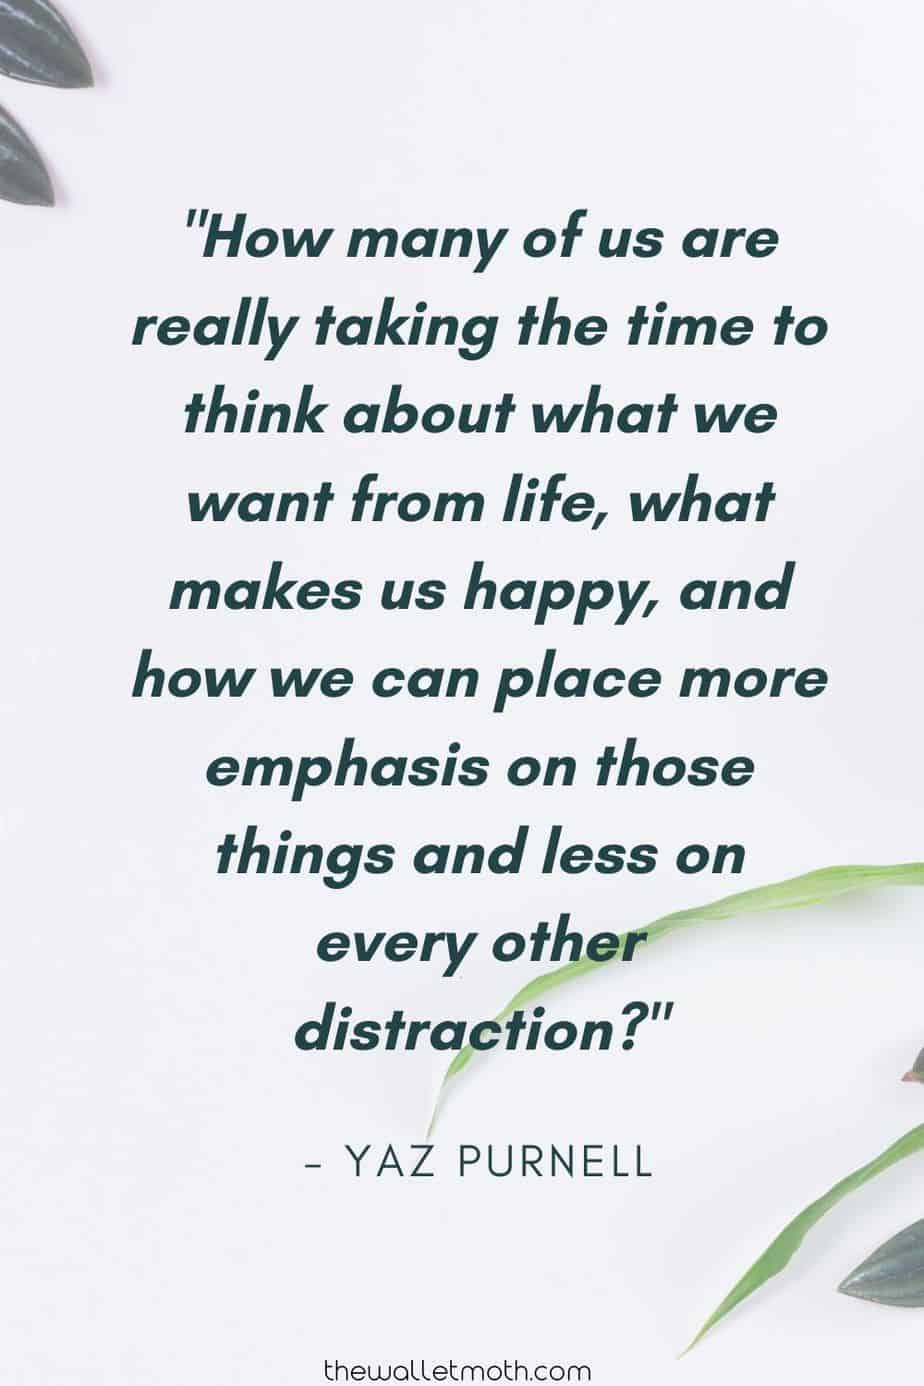 """How many of us are really taking the time to think about what we want from life, what makes up happy, and how we can place more emphasis on those things and less on every other distraction?"" - The Wallet Moth"